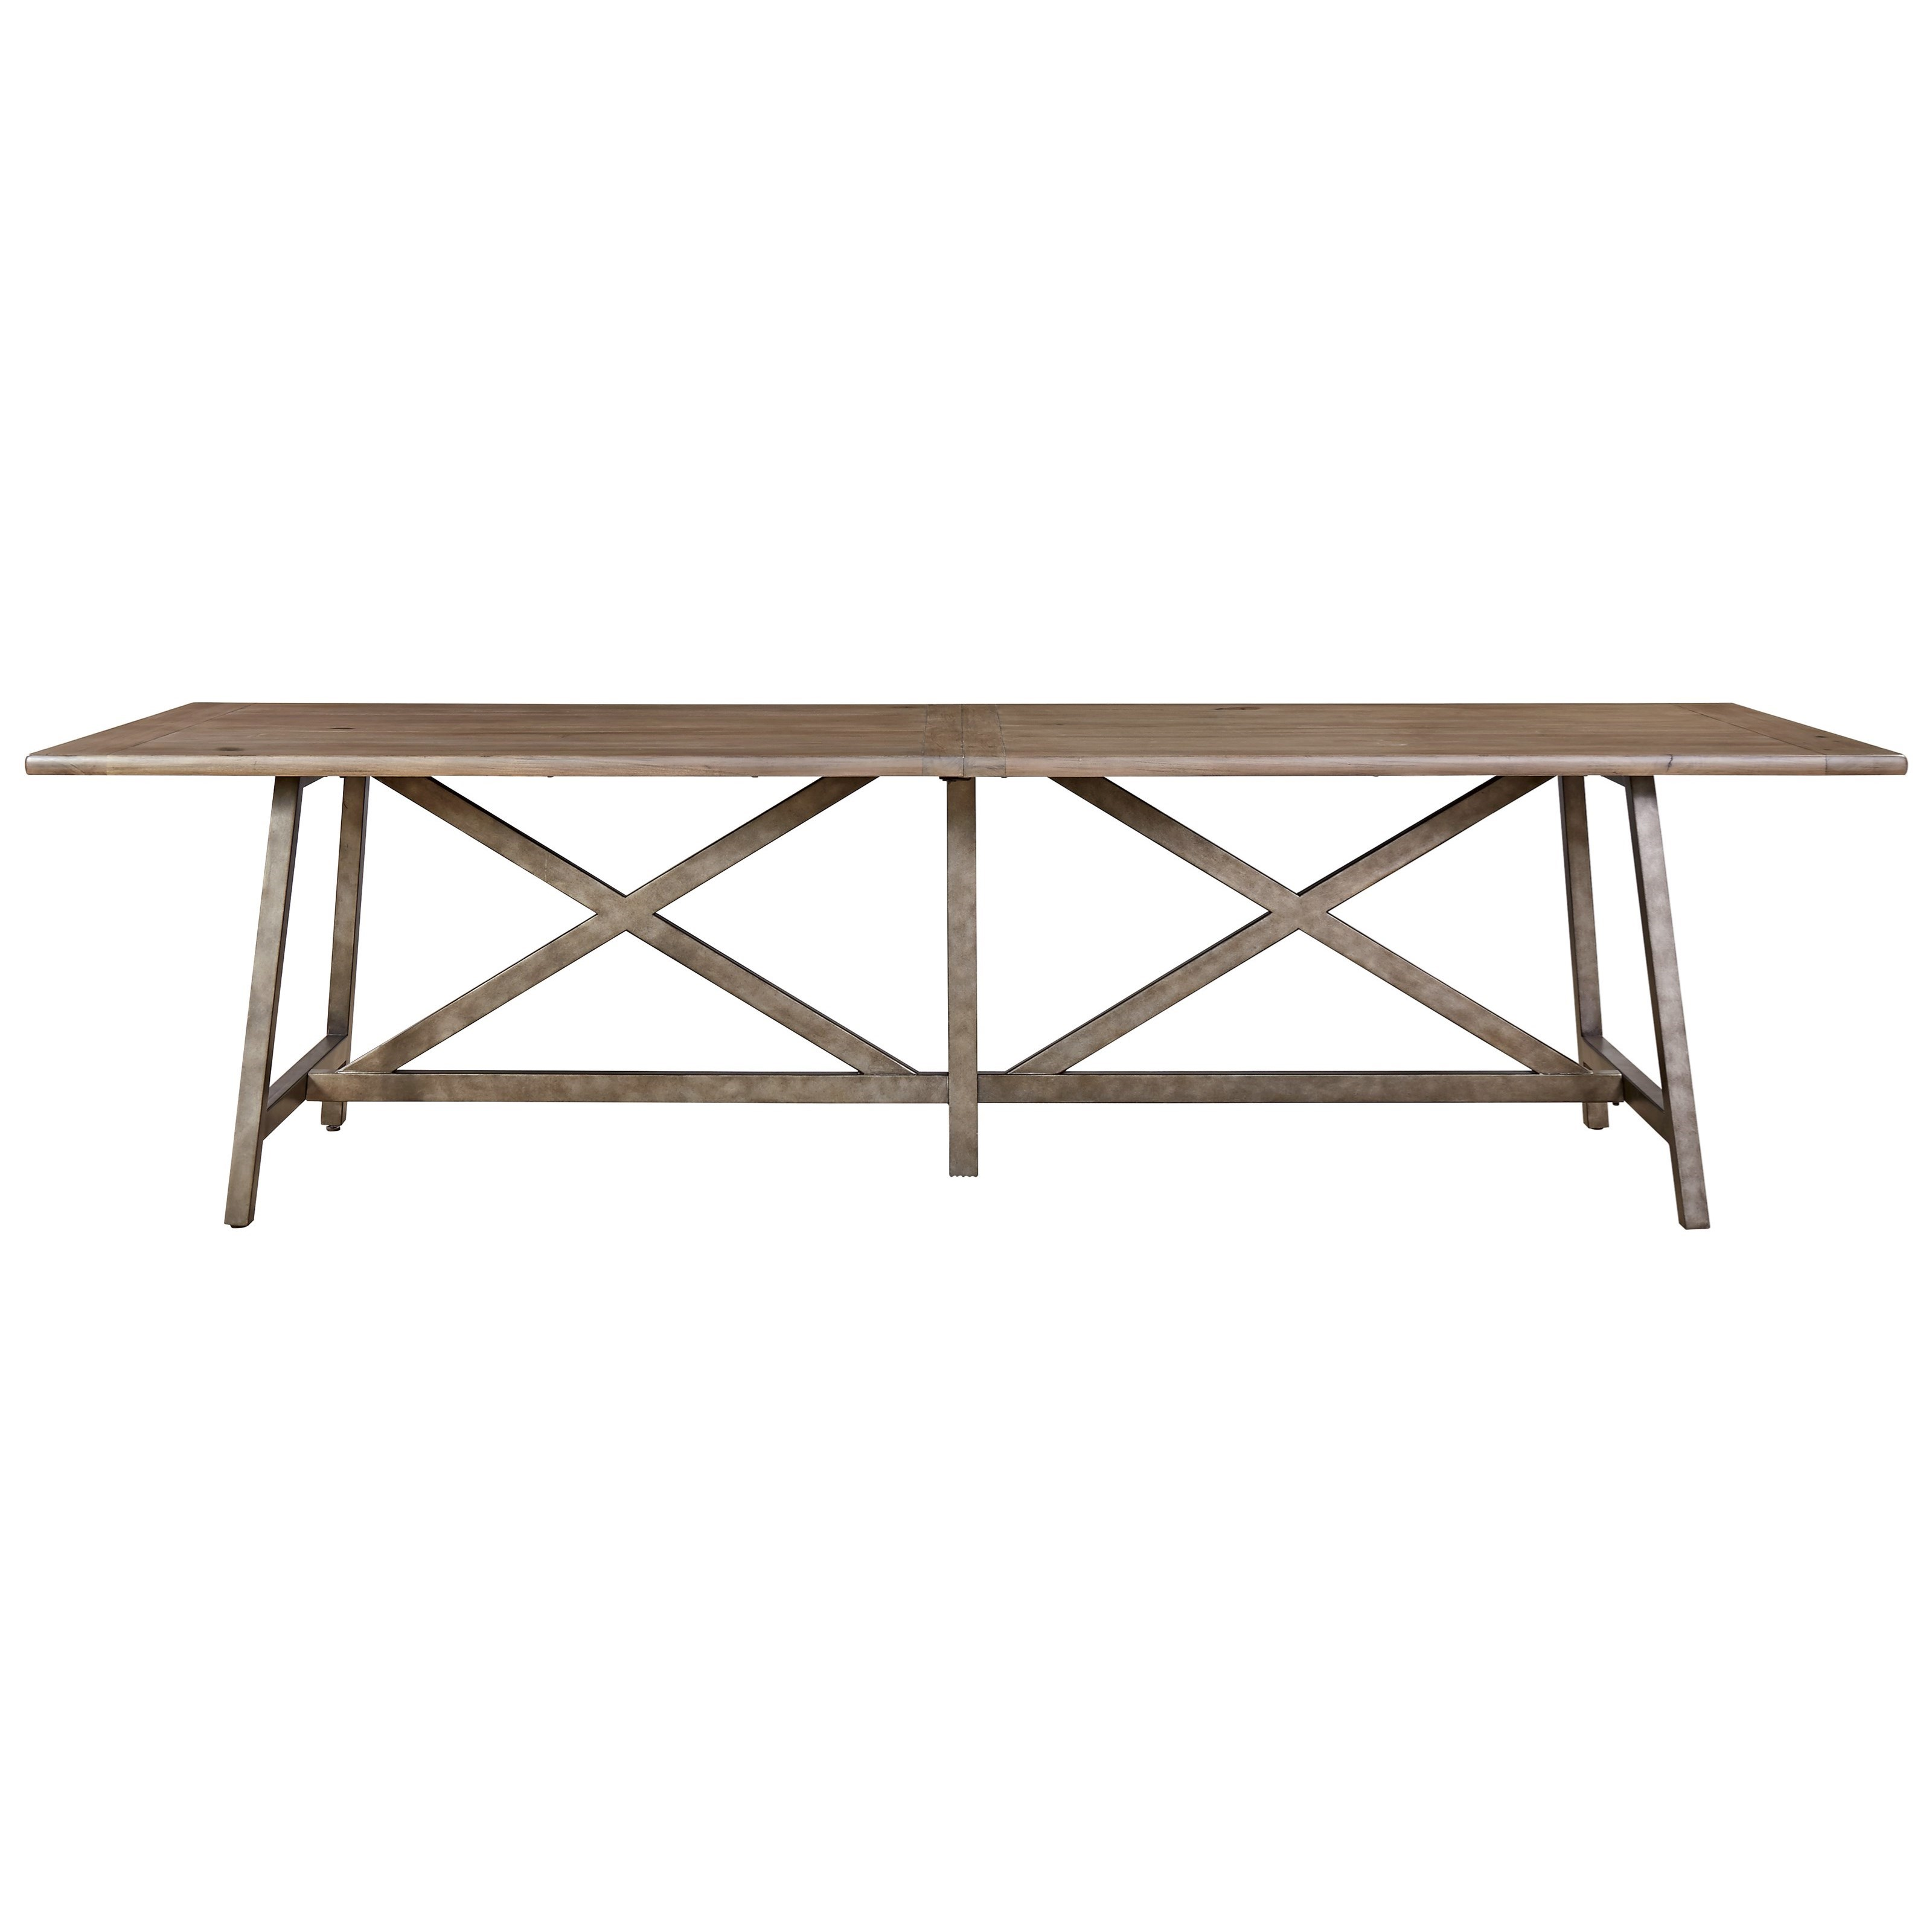 Universal Authenticity Reunion Dining Table - Item Number: 572656